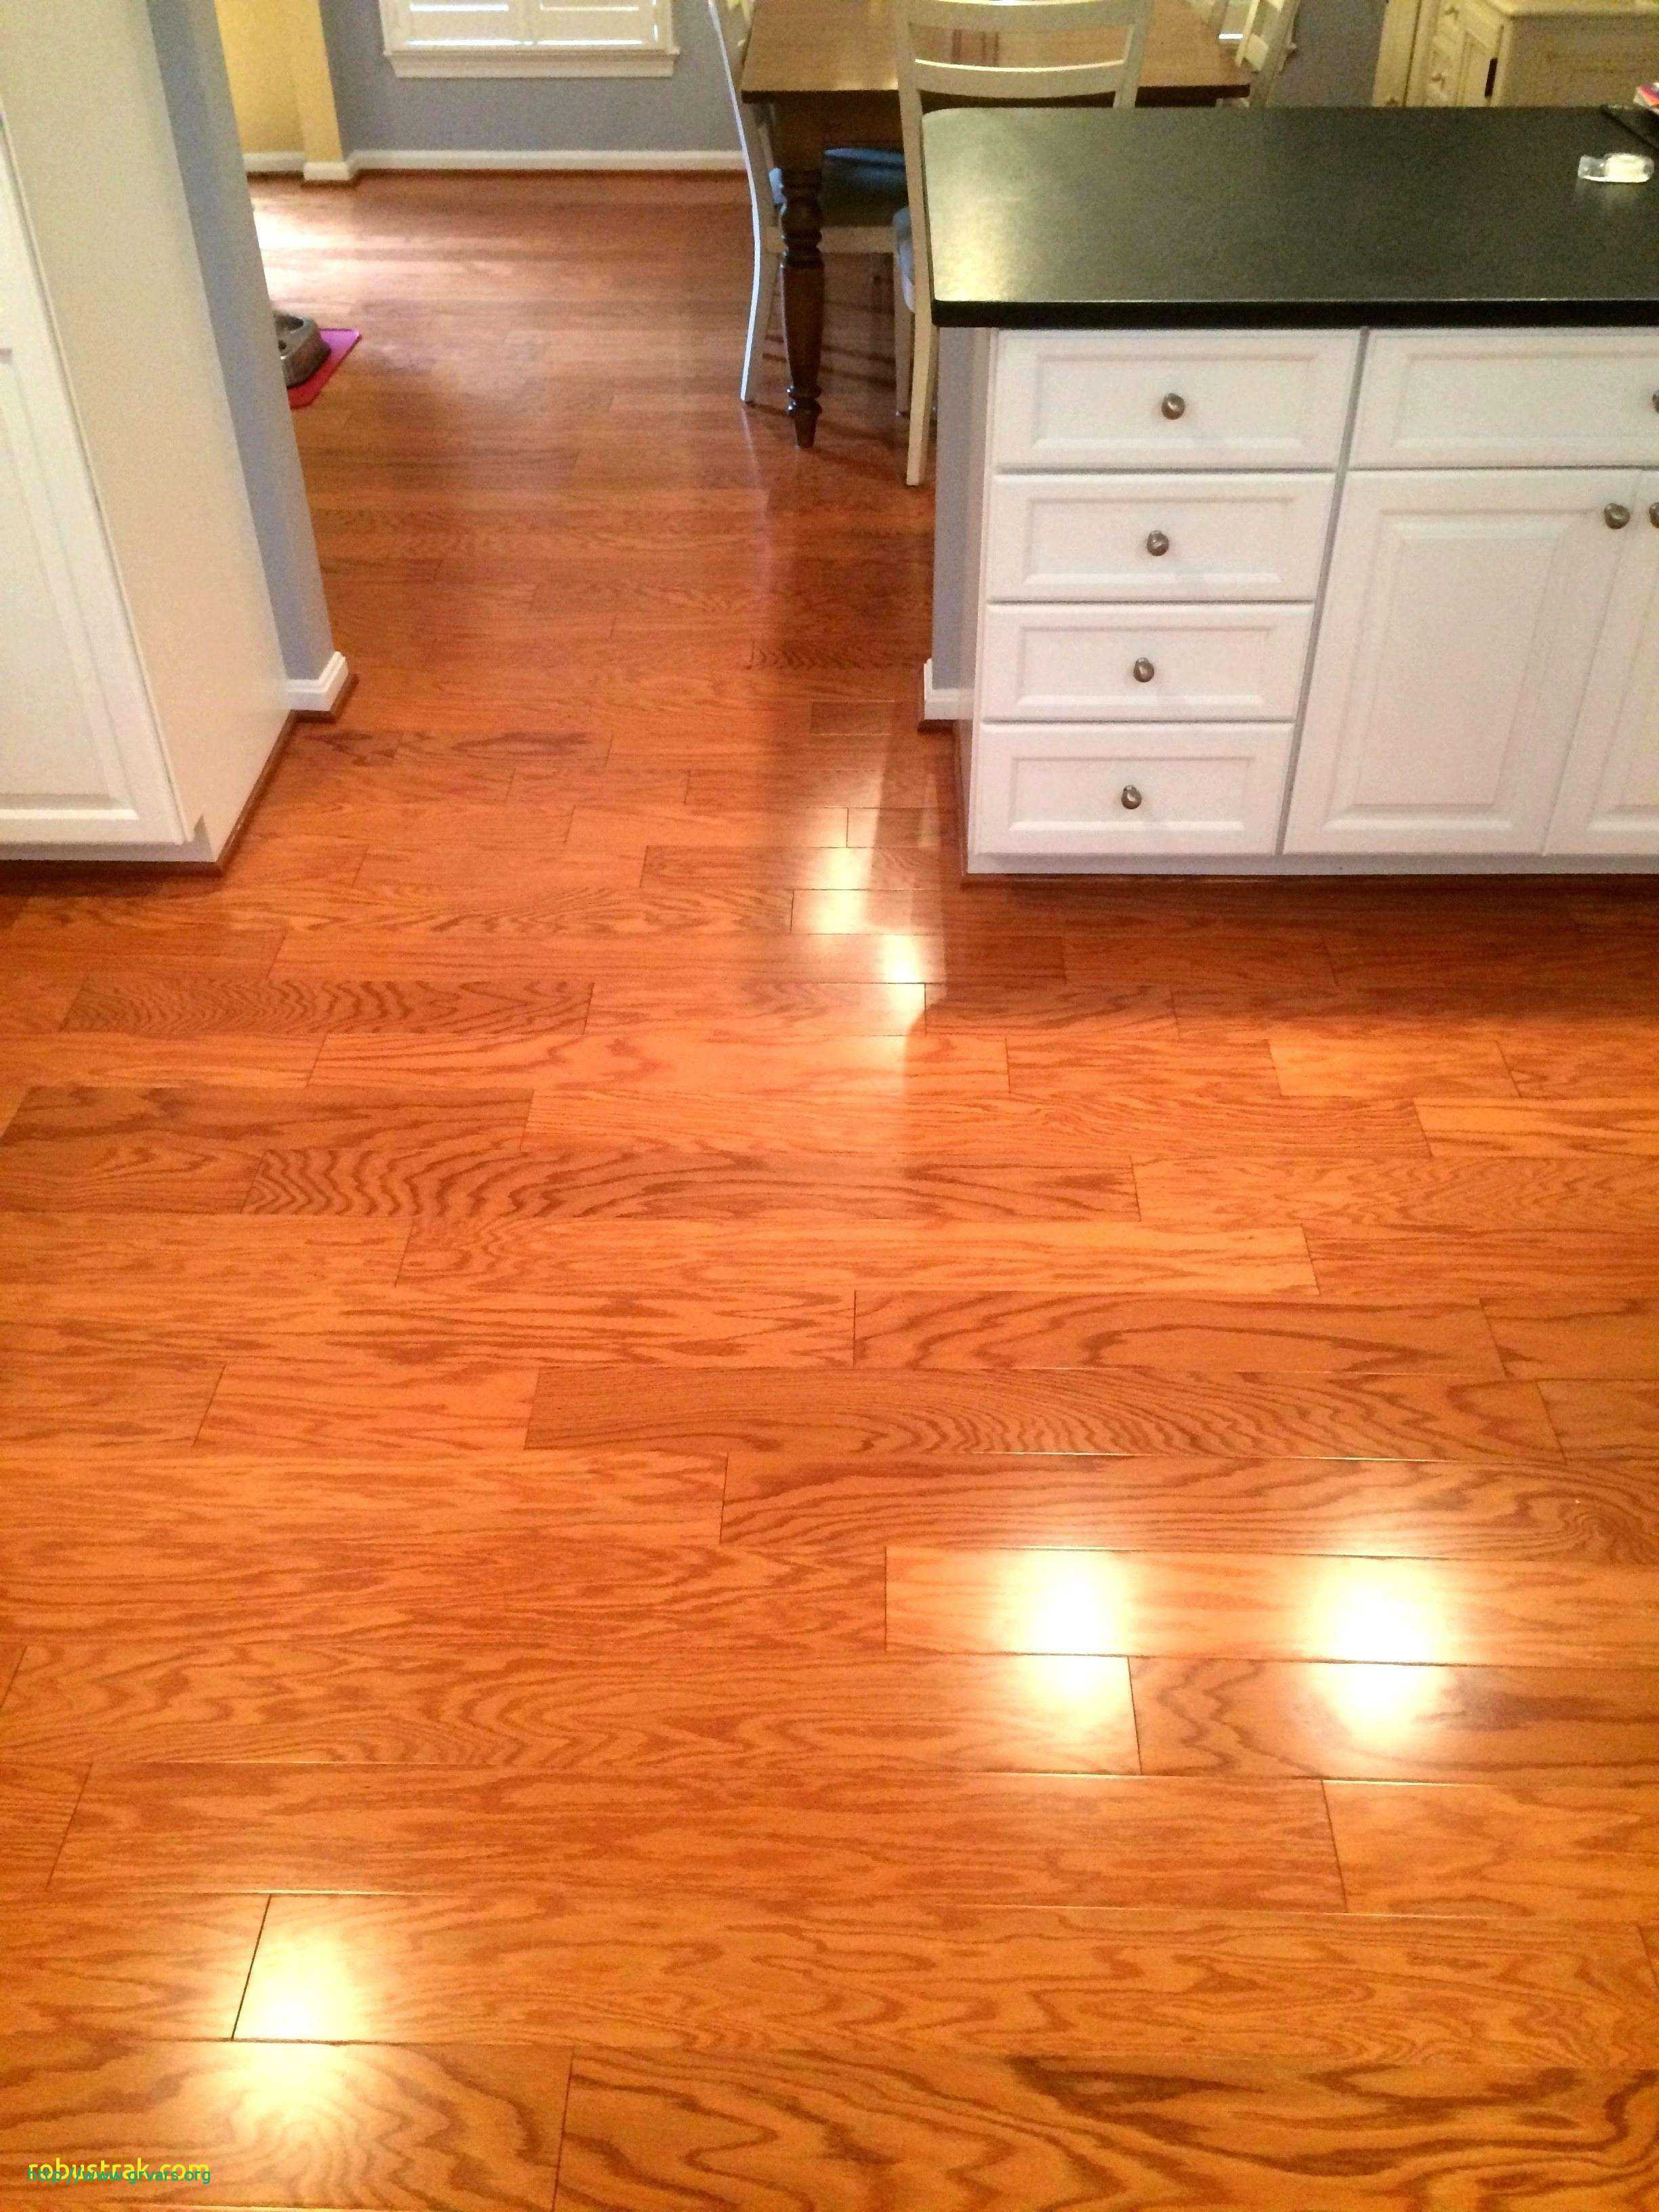 teak hardwood flooring reviews of 20 impressionnant cheapest place to buy hardwood flooring ideas blog regarding 20 photos of the 20 impressionnant cheapest place to buy hardwood flooring